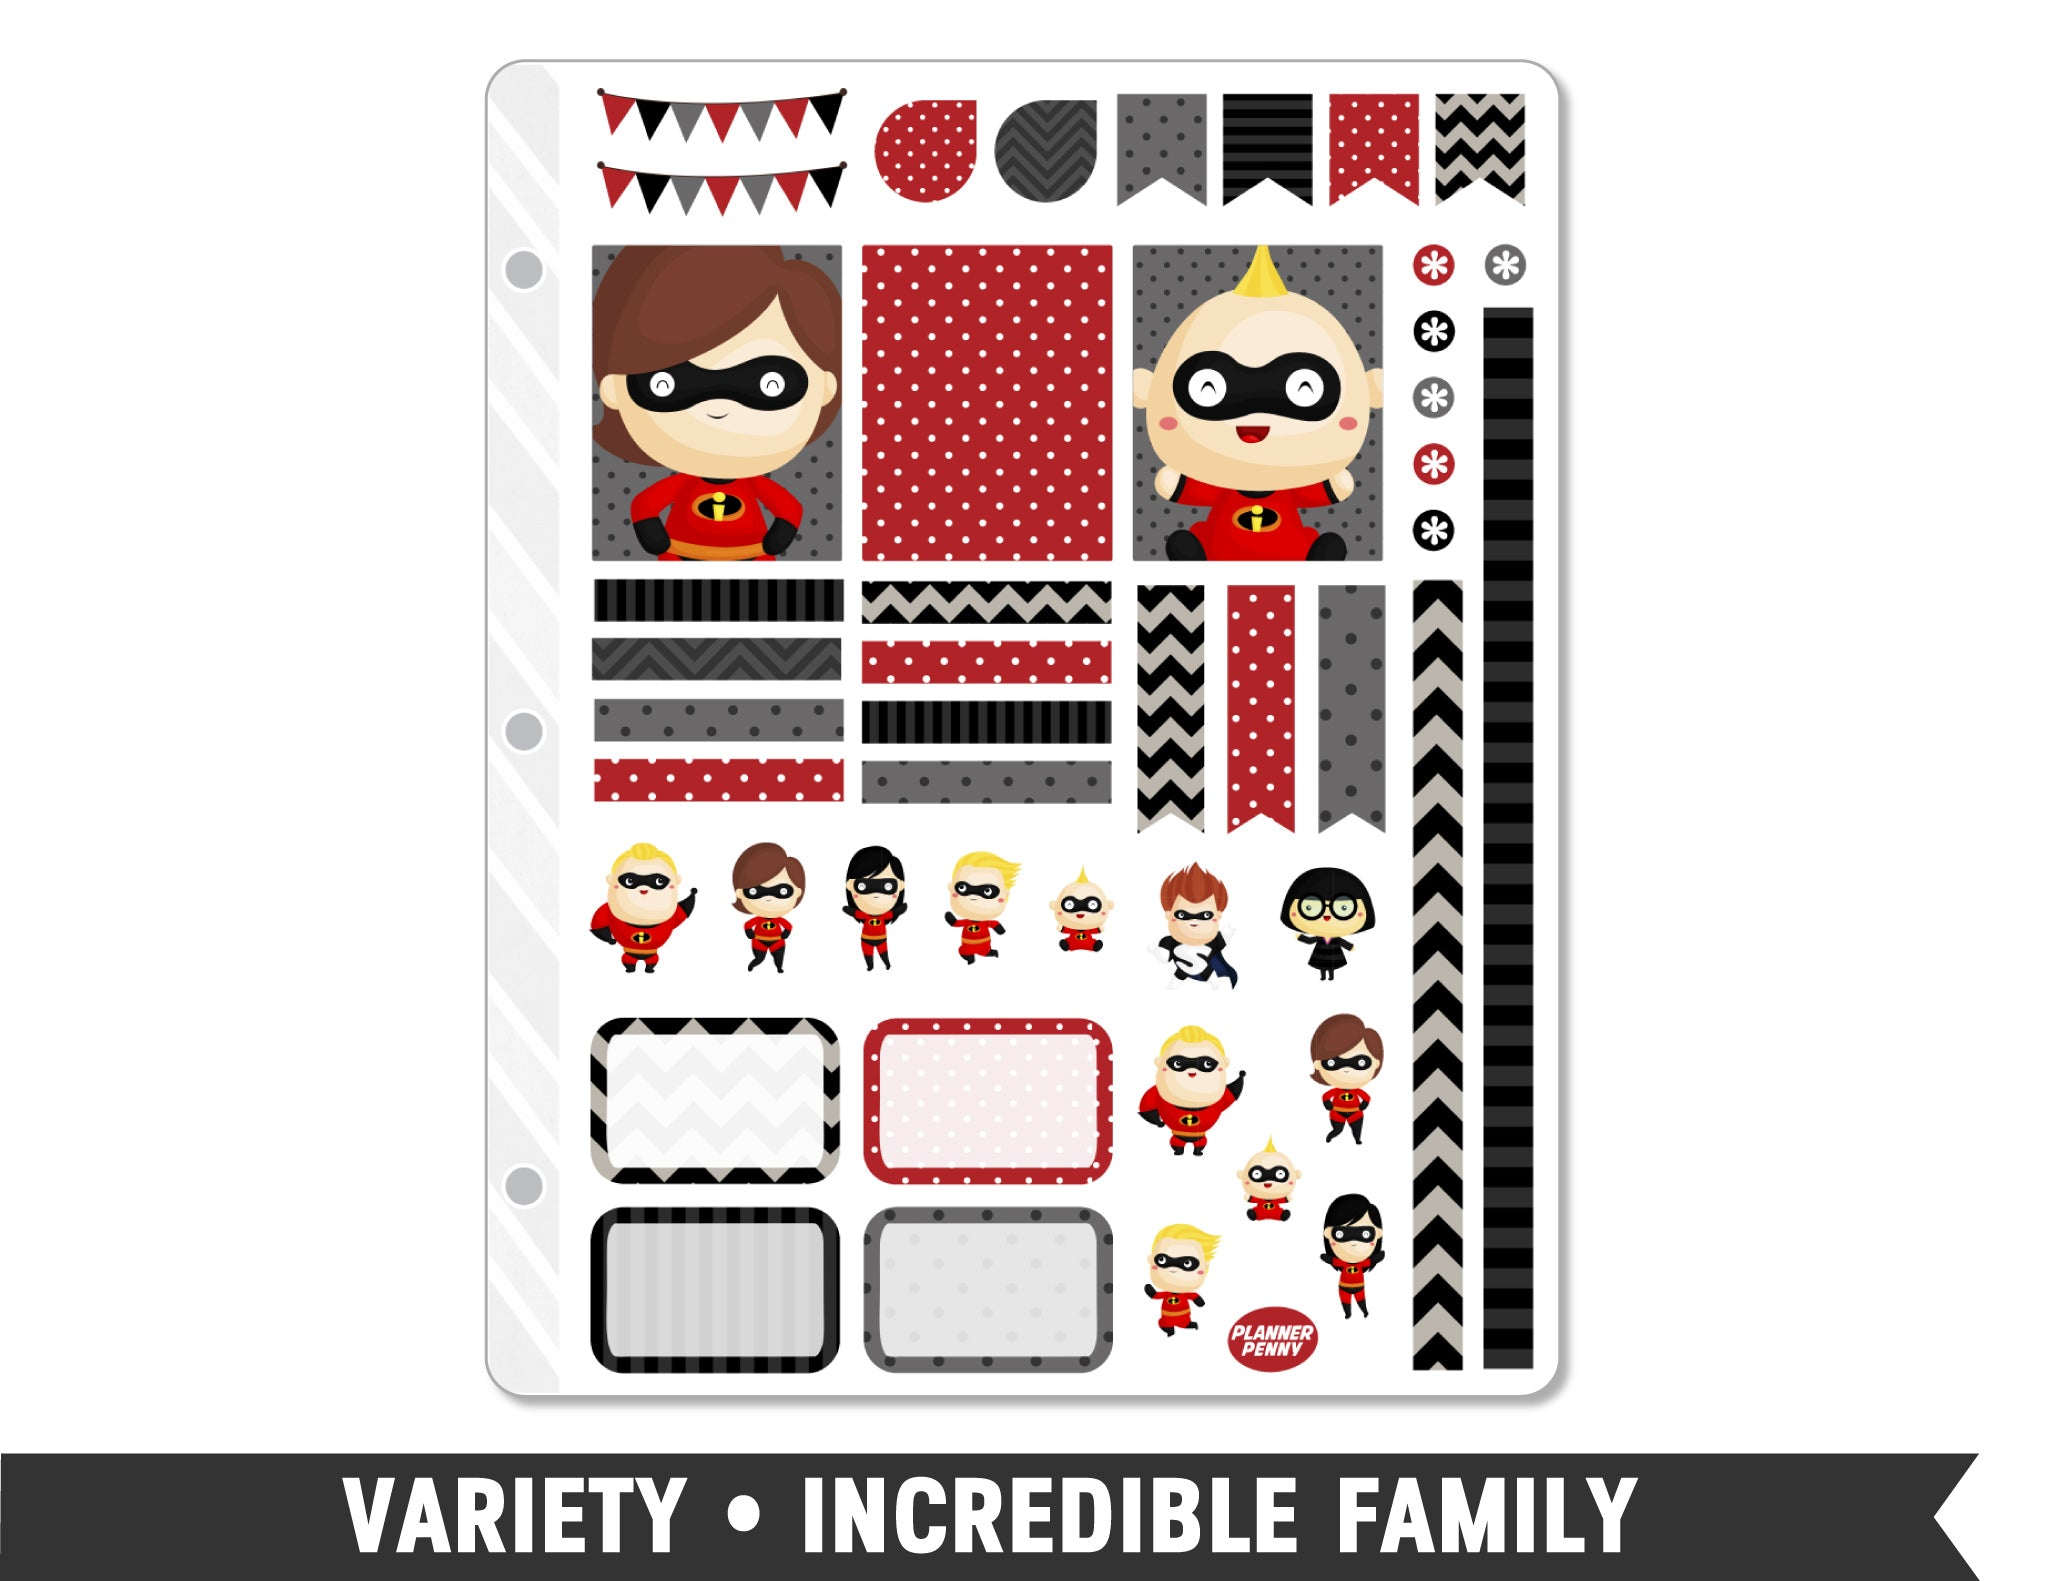 Variety • Incredible Family Weekly Spread Planner Stickers - Planner Penny